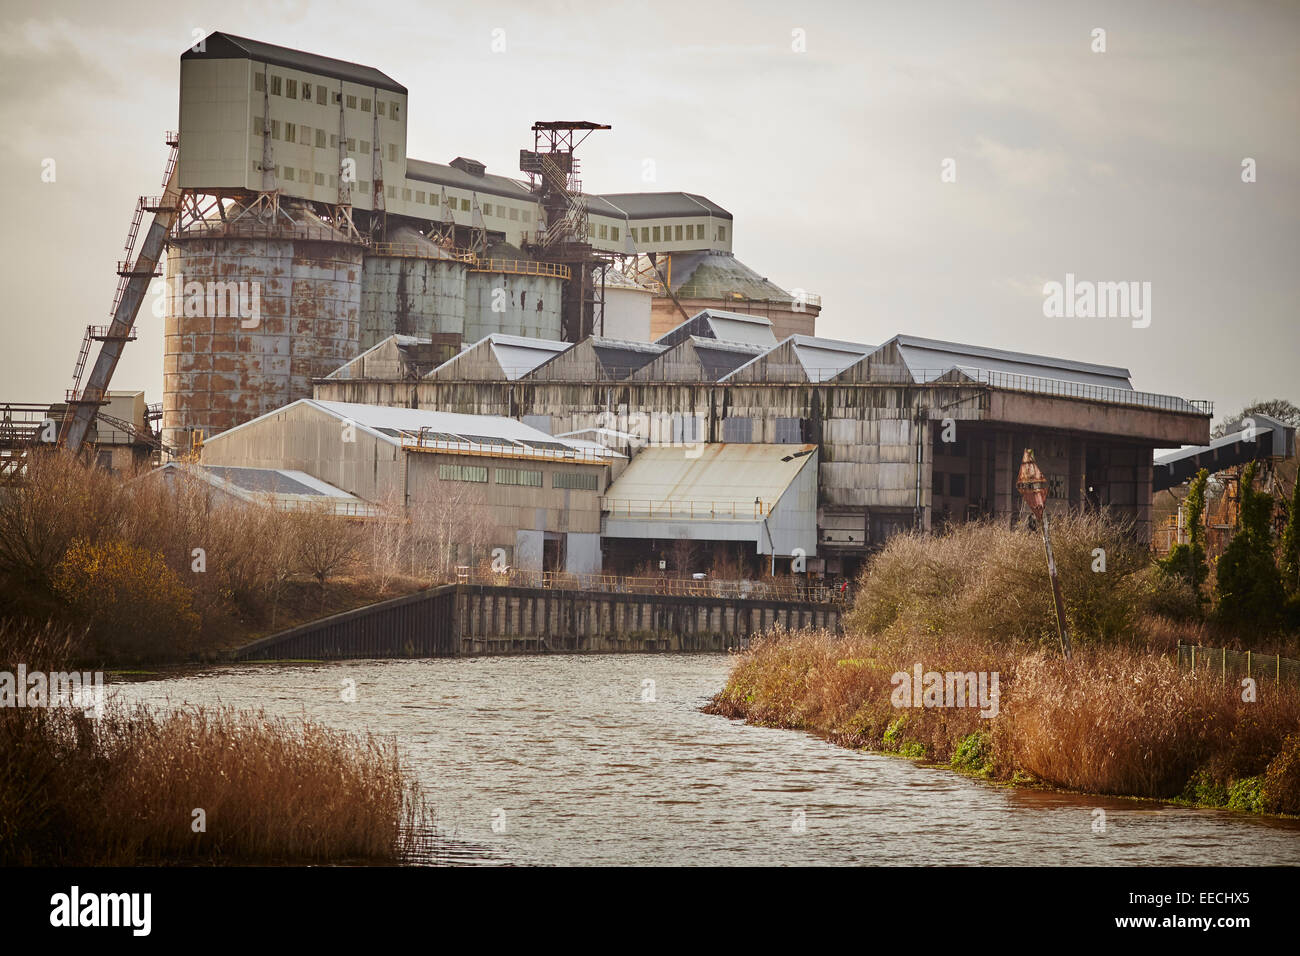 Tata Chemicals Europe plant part of its soda ash and sodium bicarbonate business in Northwich, Cheshire. - Stock Image